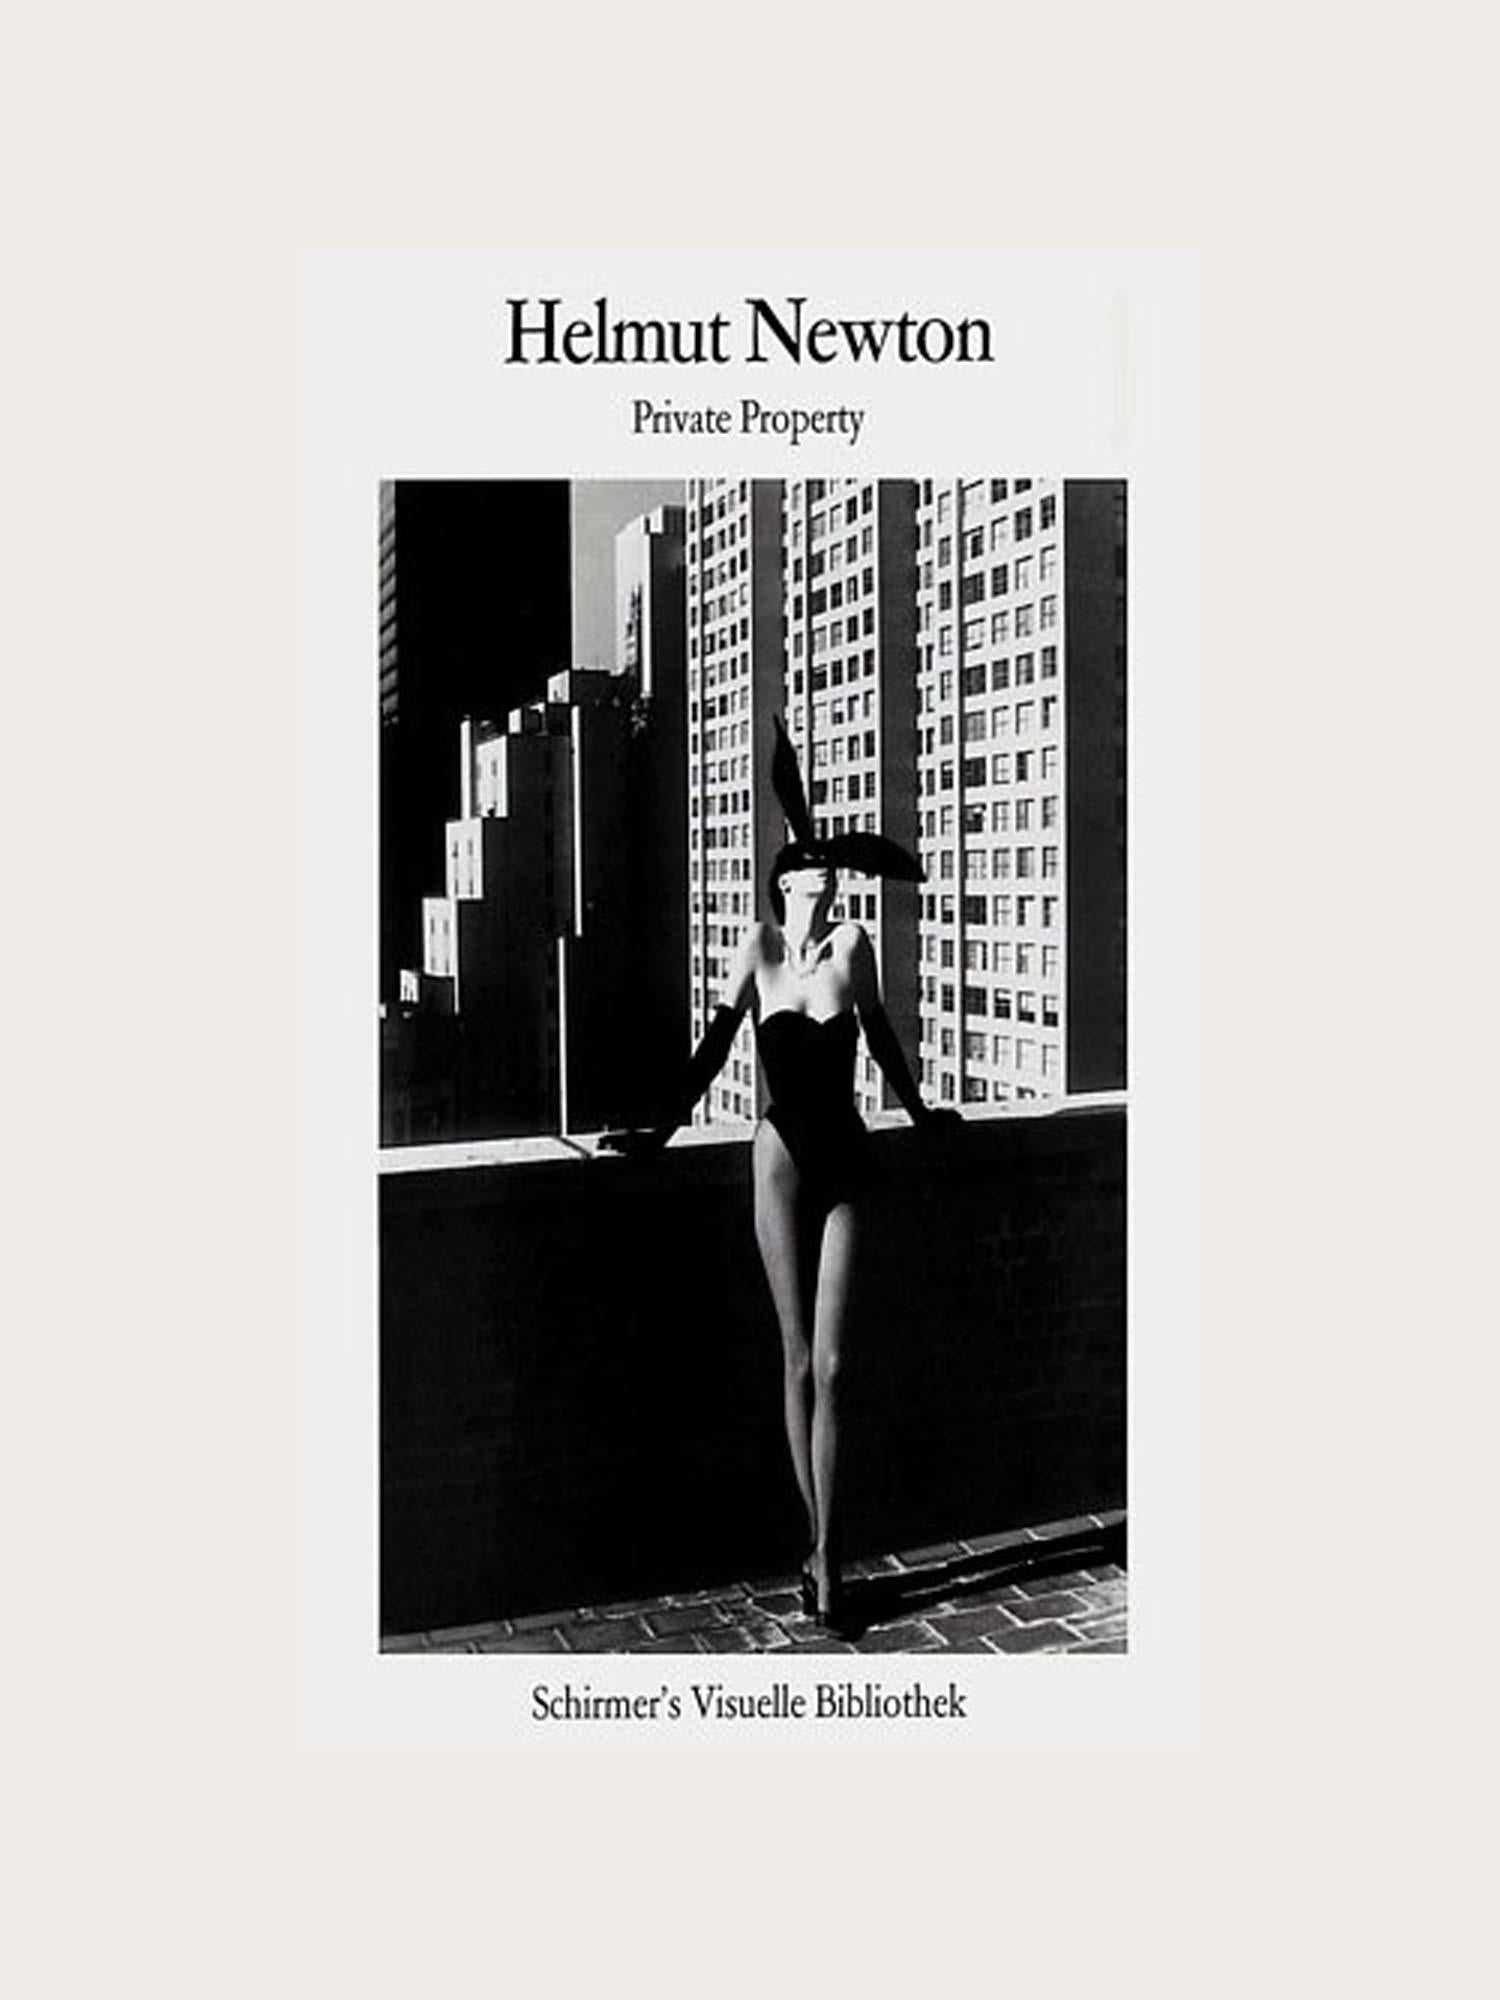 Private Property - Helmut Newton